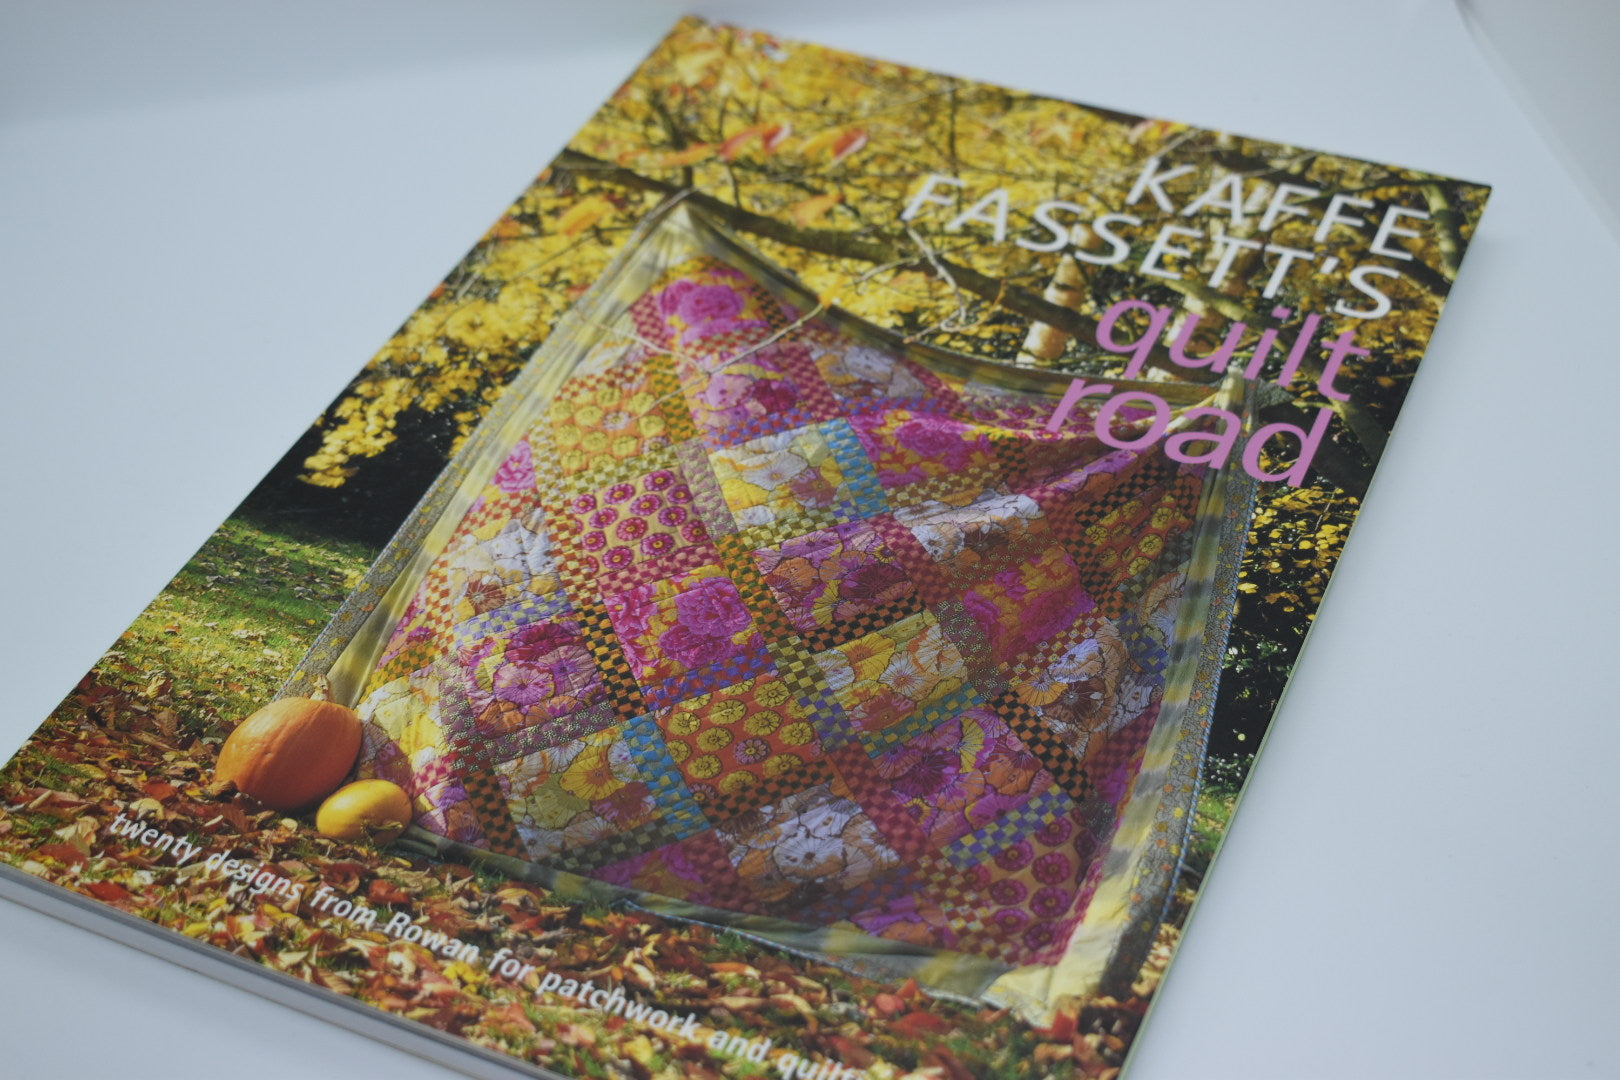 Quilt Road by Kaffe Fassett